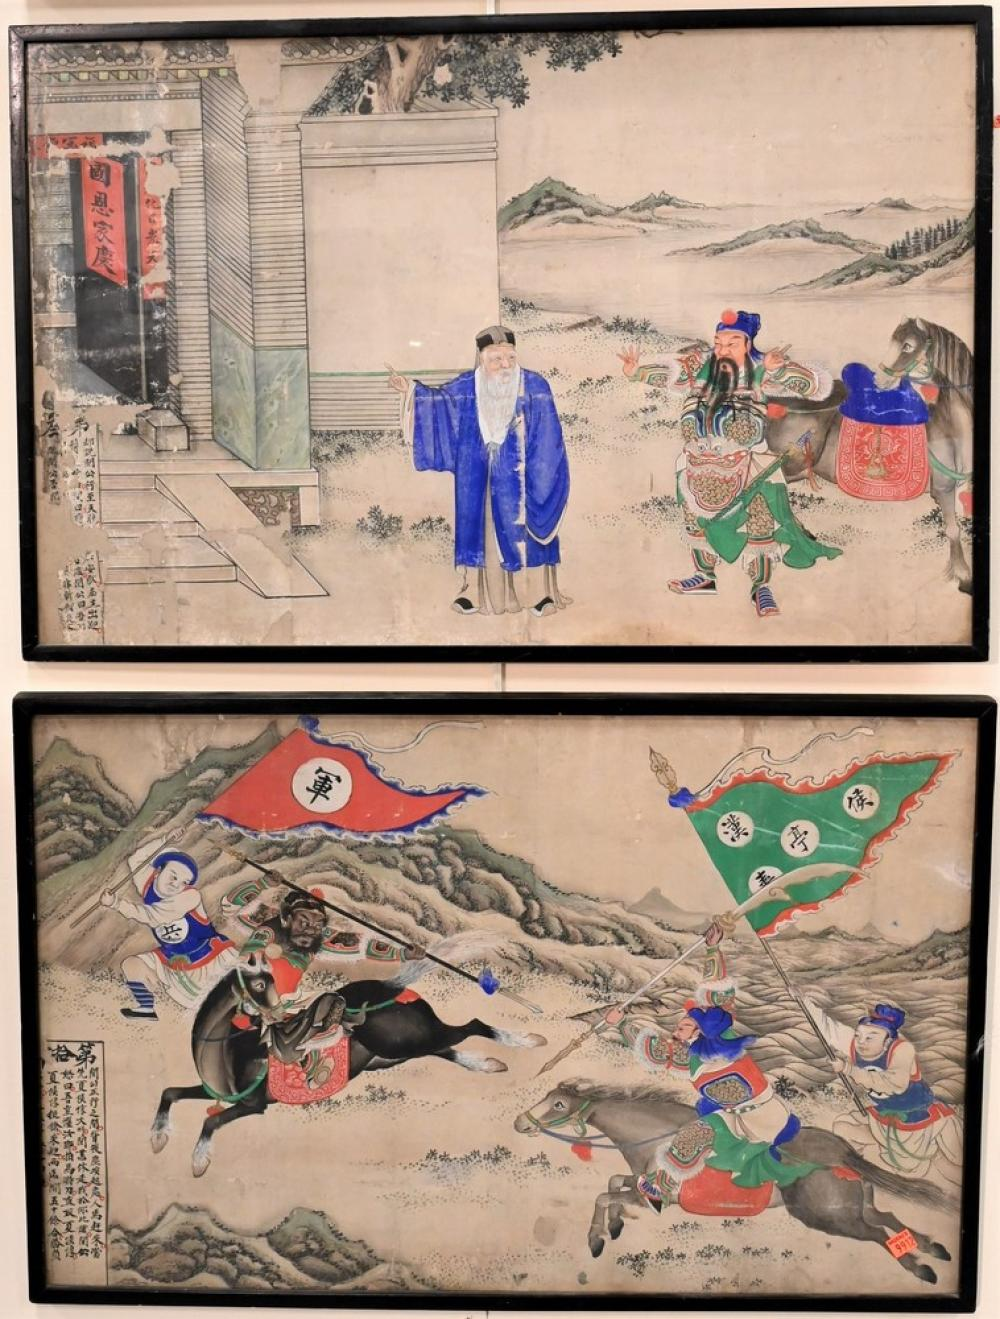 Set of Five Chinese Watercolors on Paperall having same warrior figure on grey horse, storyline from meeting with scholar to battle...